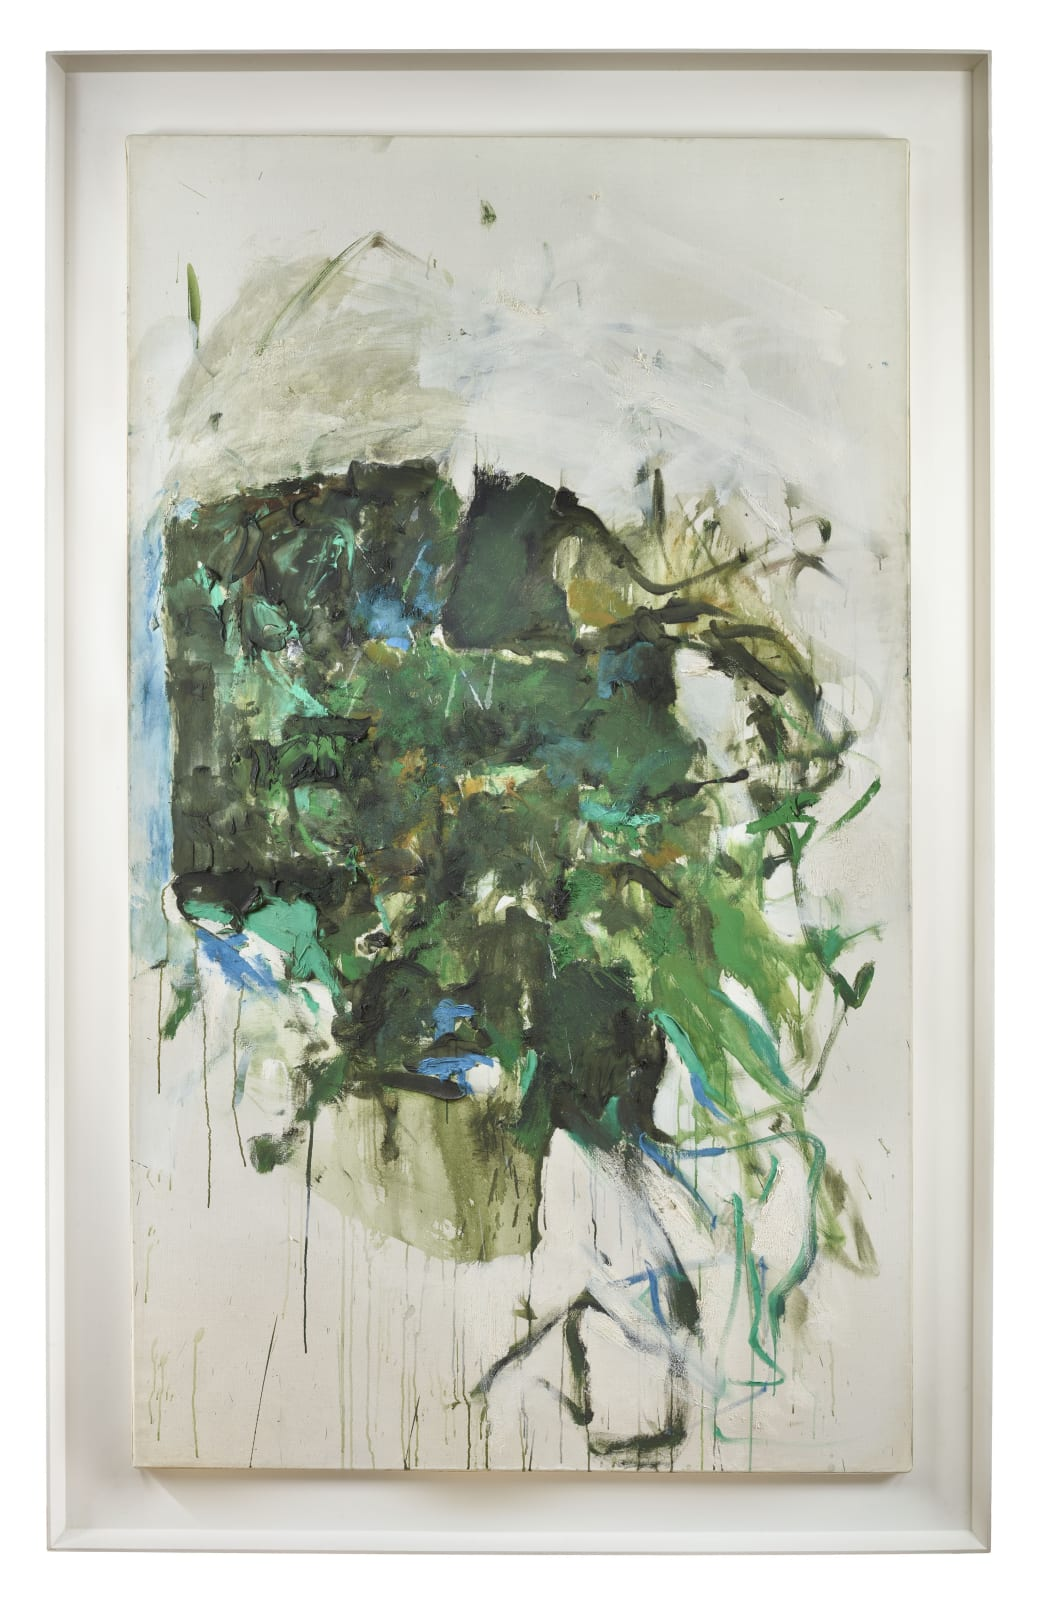 Joan MITCHELL Untitled, 1964 Oil on canvas 194.9 x 113.7 cm / 76.75 x 44.75 inches